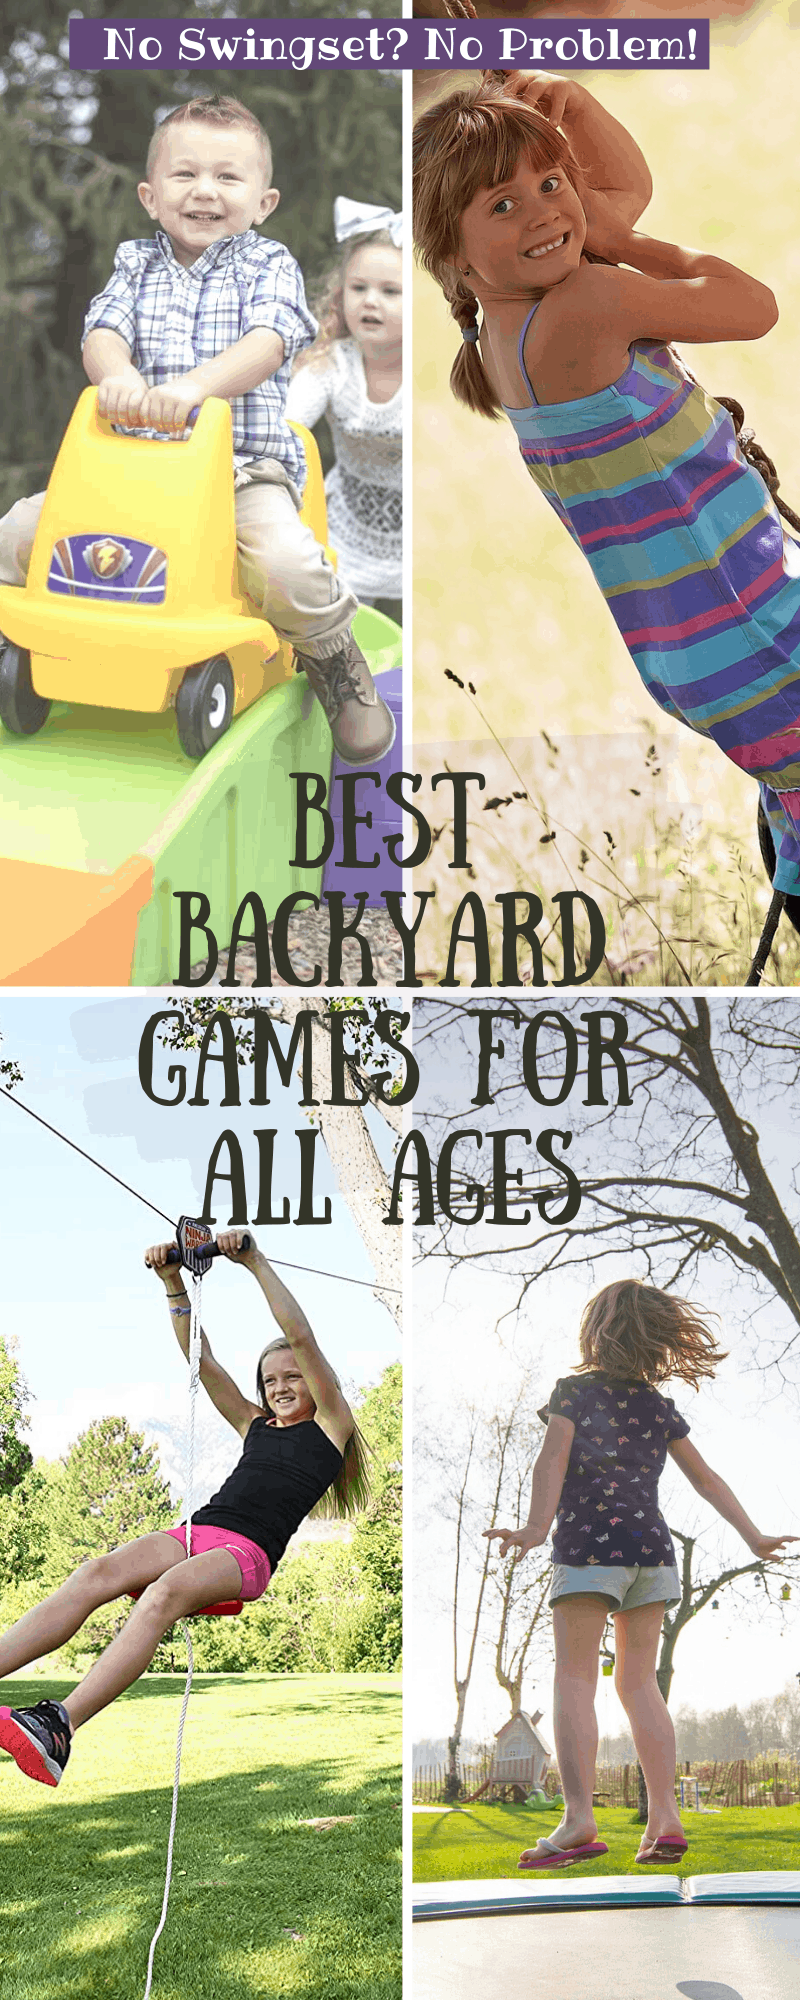 backyard fun for all ages